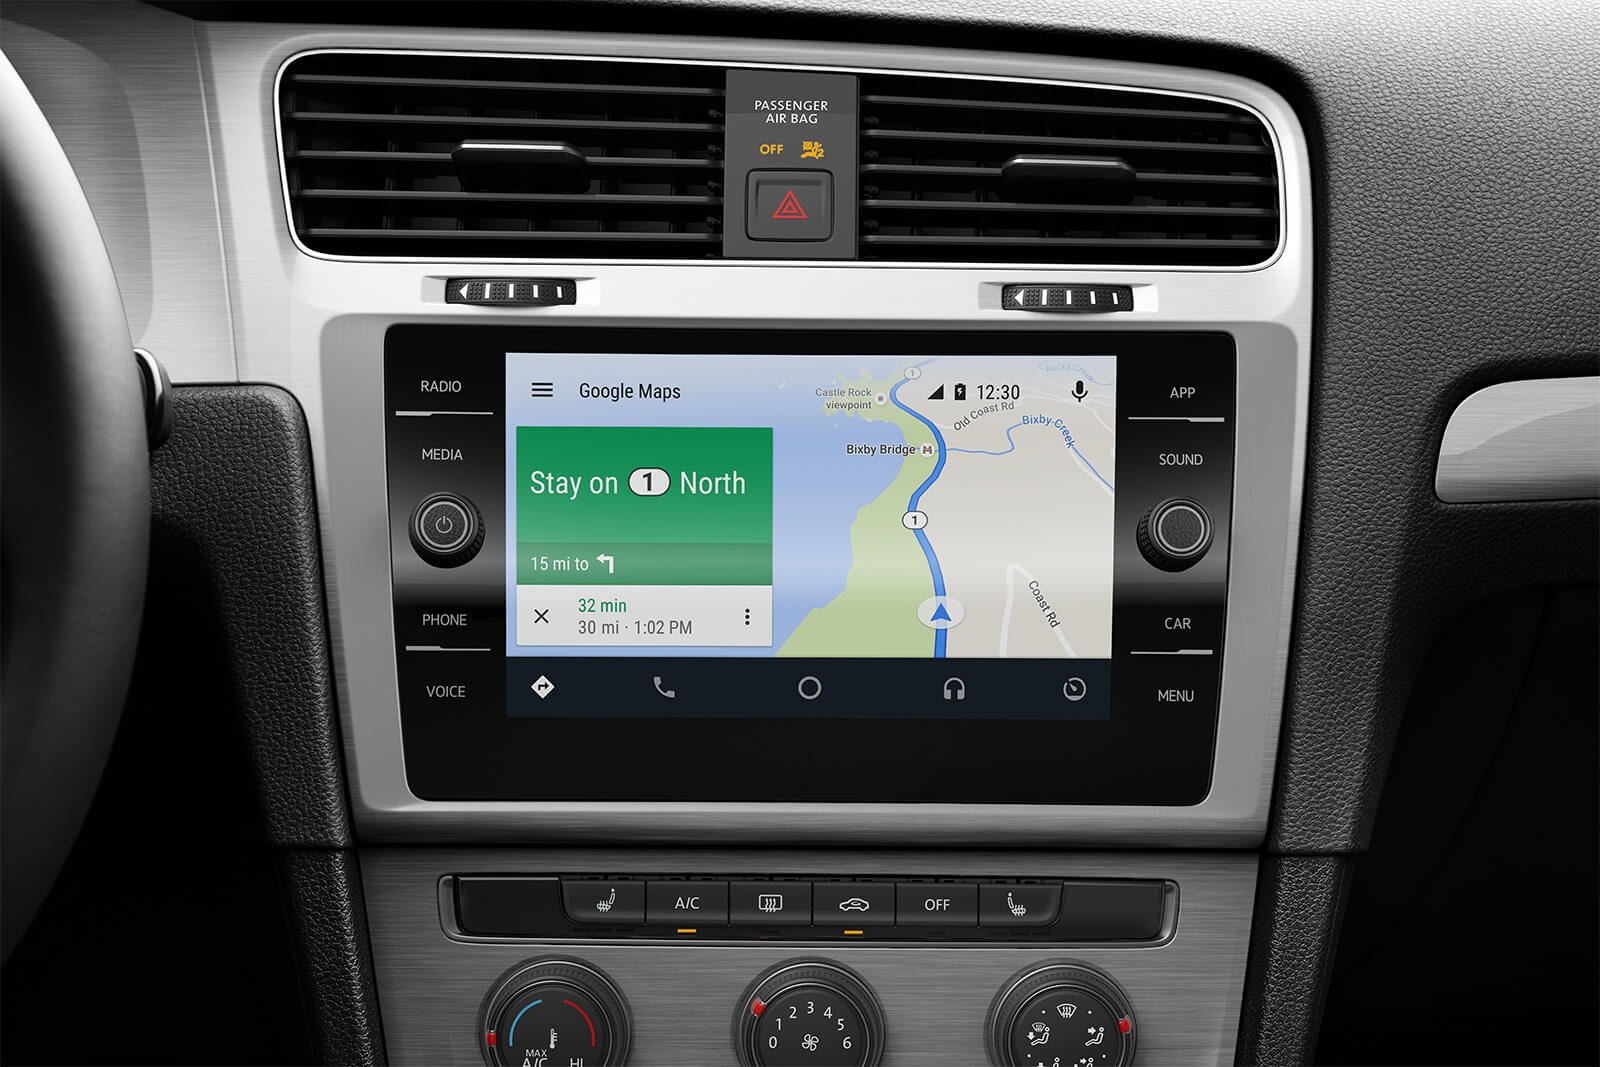 Touchscreen in the 2019 Golf